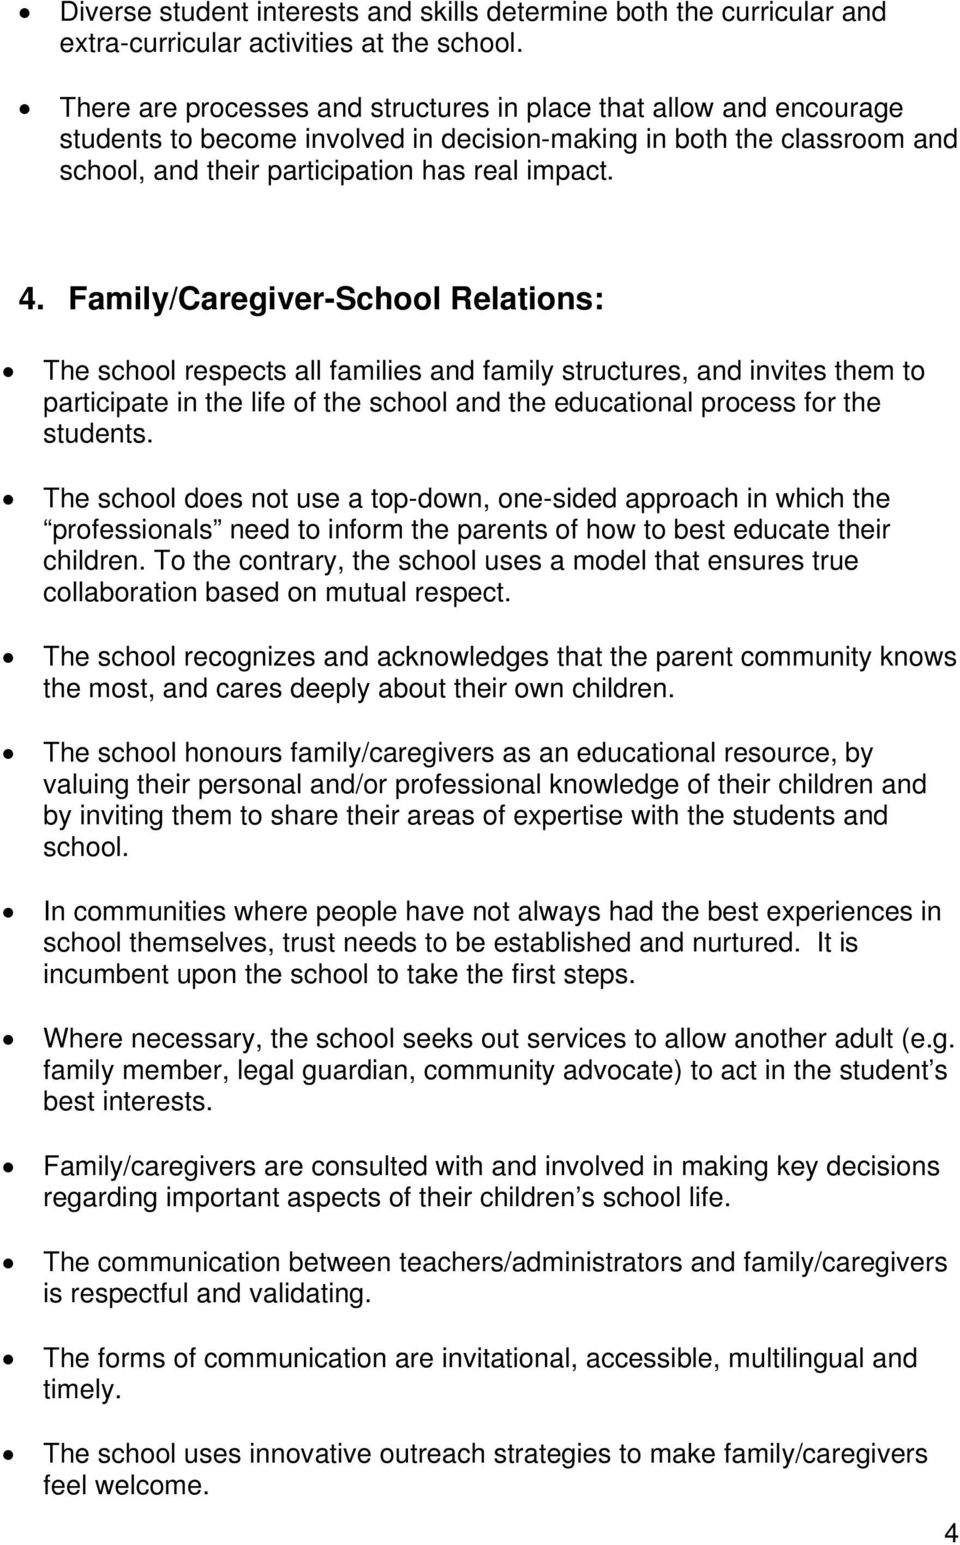 Family/Caregiver-School Relations: The school respects all families and family structures, and invites them to participate in the life of the school and the educational process for the students.